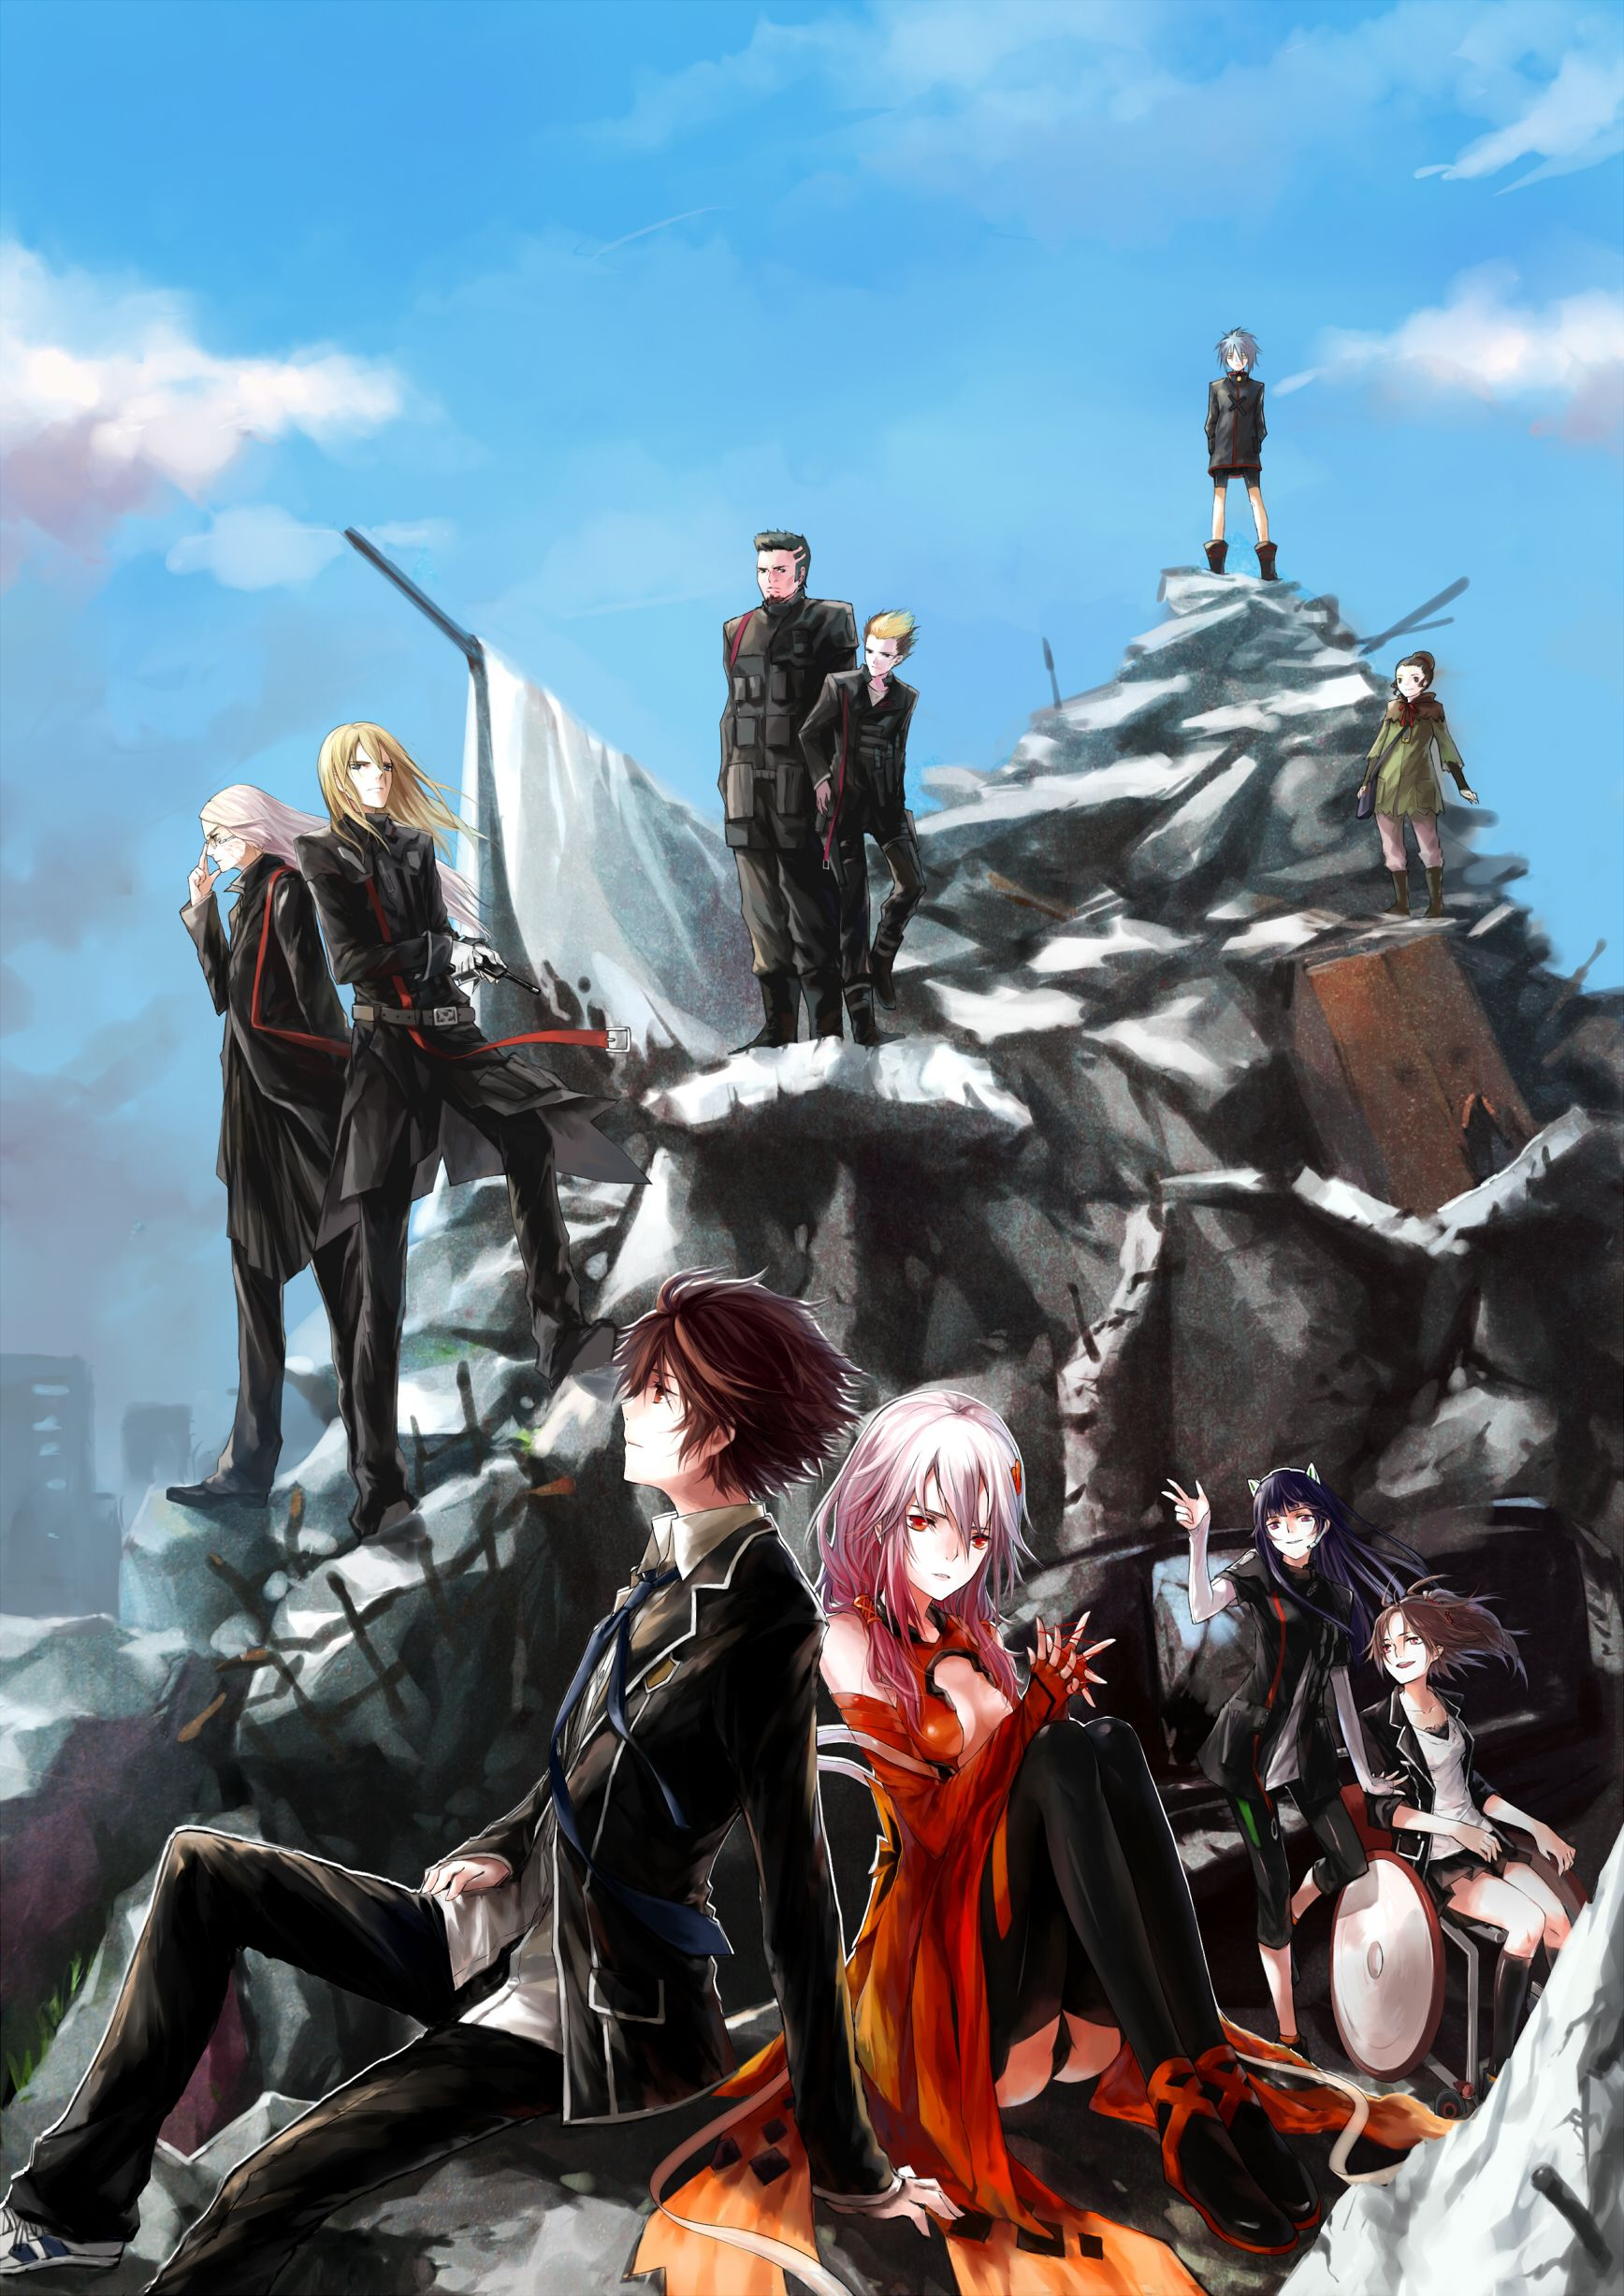 Guilty Crown Review Guilty crown wallpapers, Anime, Crown